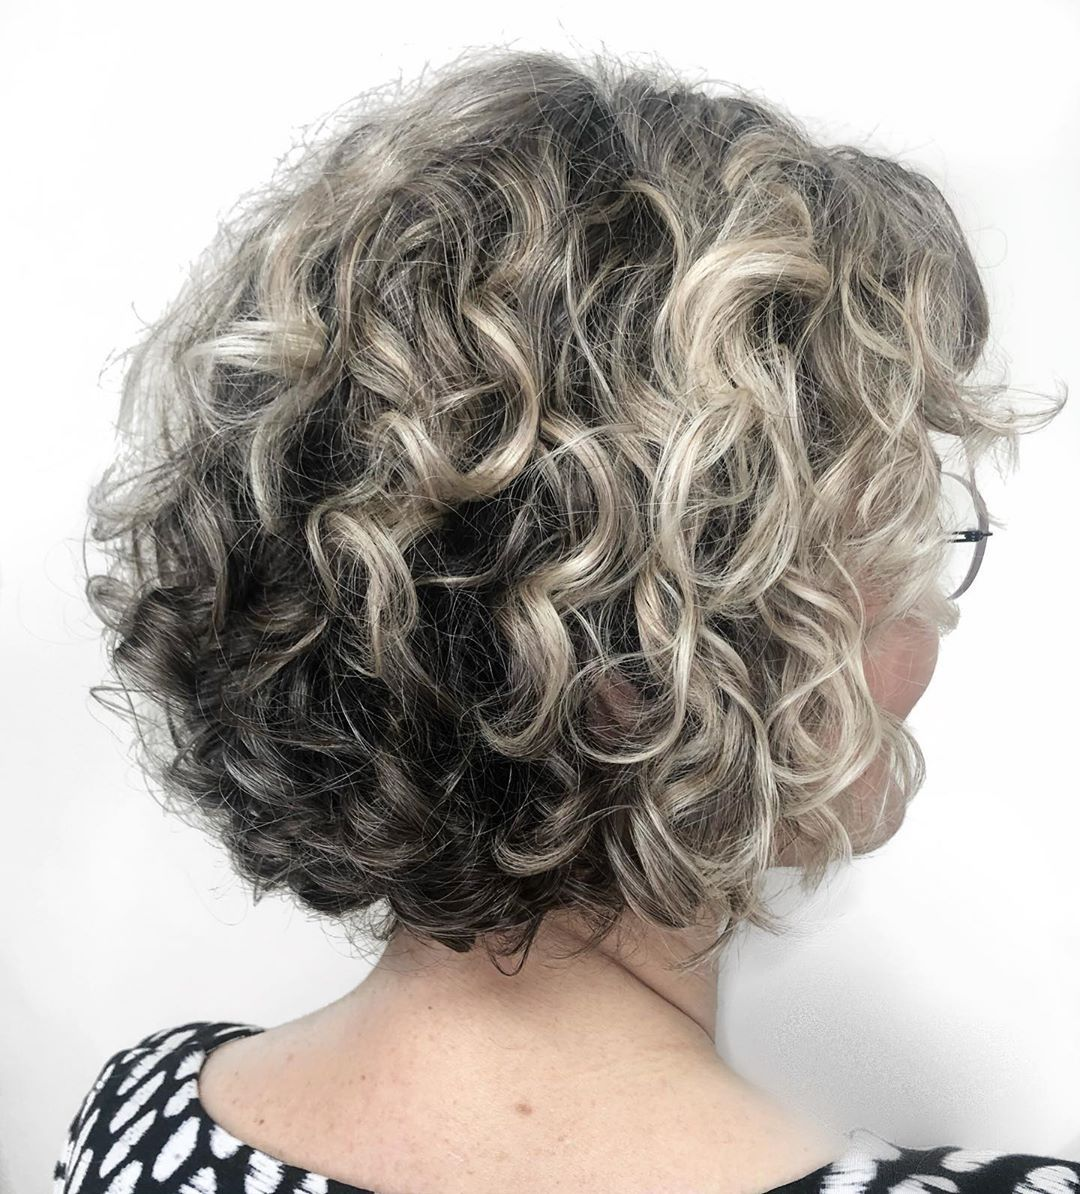 Anjelica Curly Hair Specialist On Instagram G R A Y Hair Yep I Said It We Are All Going To Get Th Grey Hair Color Curly Hair Styles Curly Hair Specialist